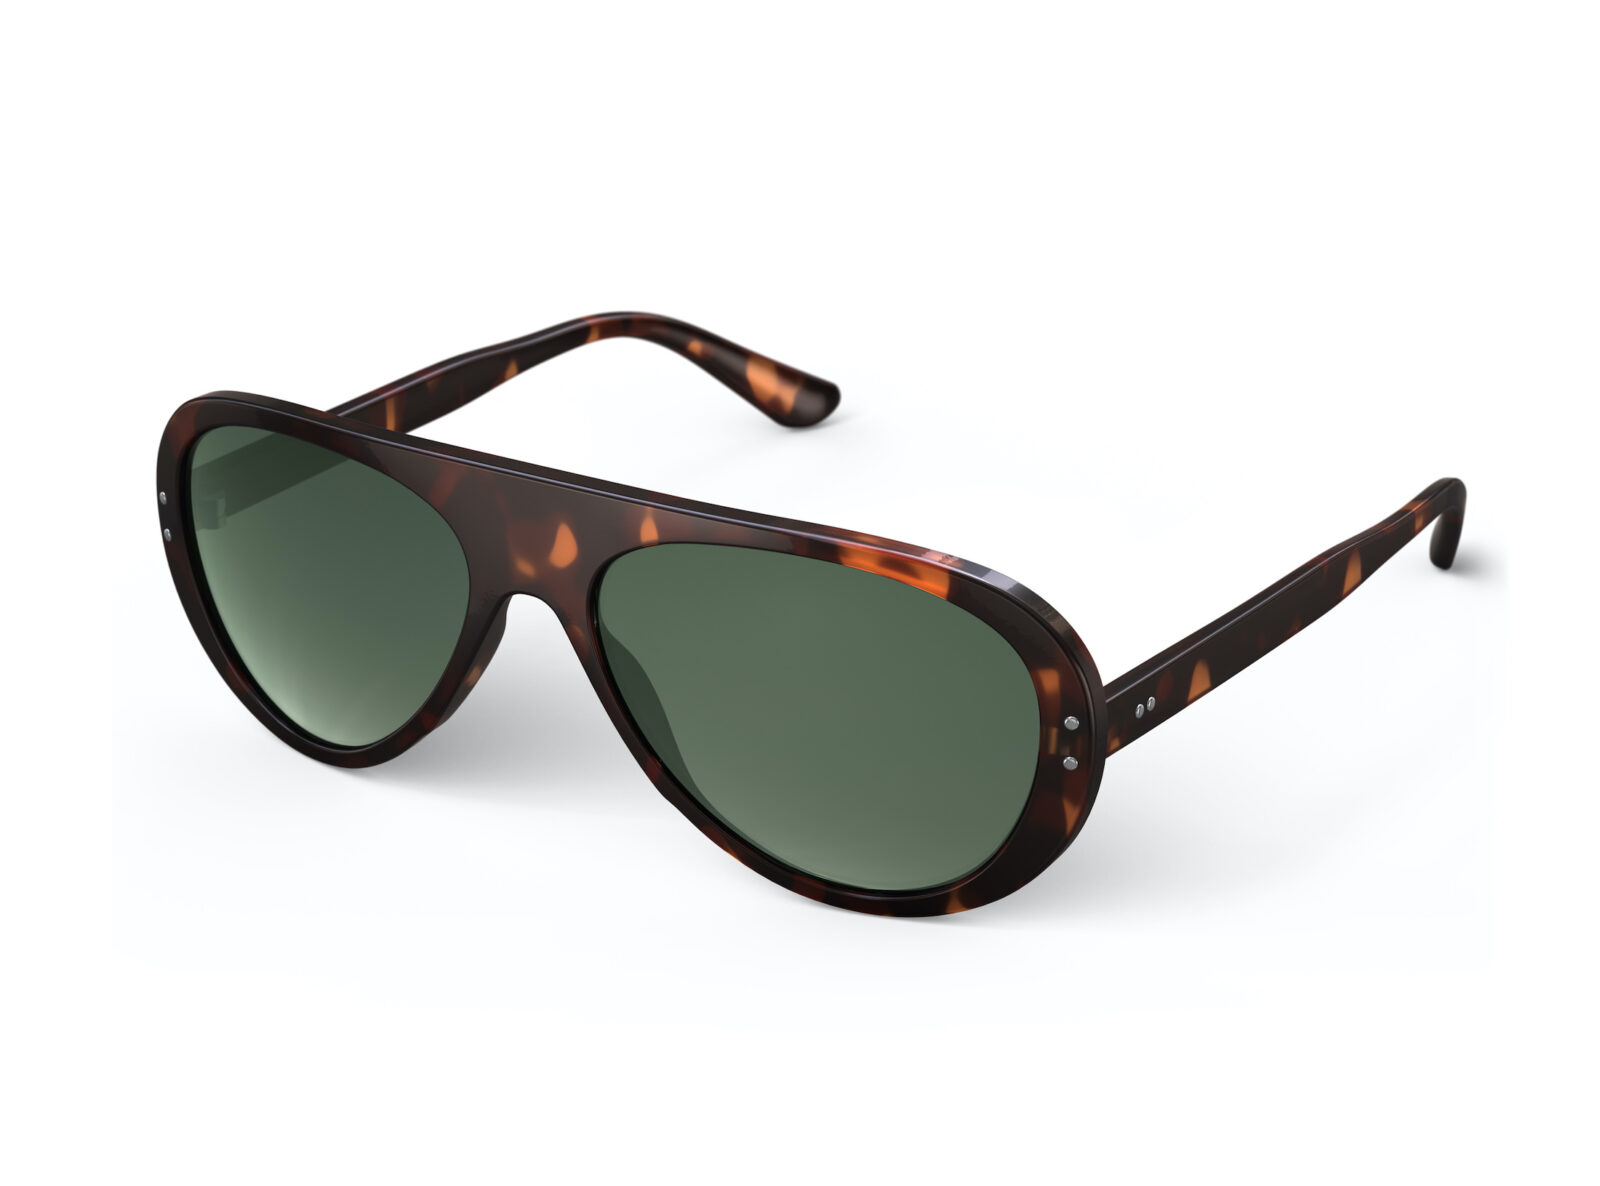 Surf Aviator Sunglasses by Vallon